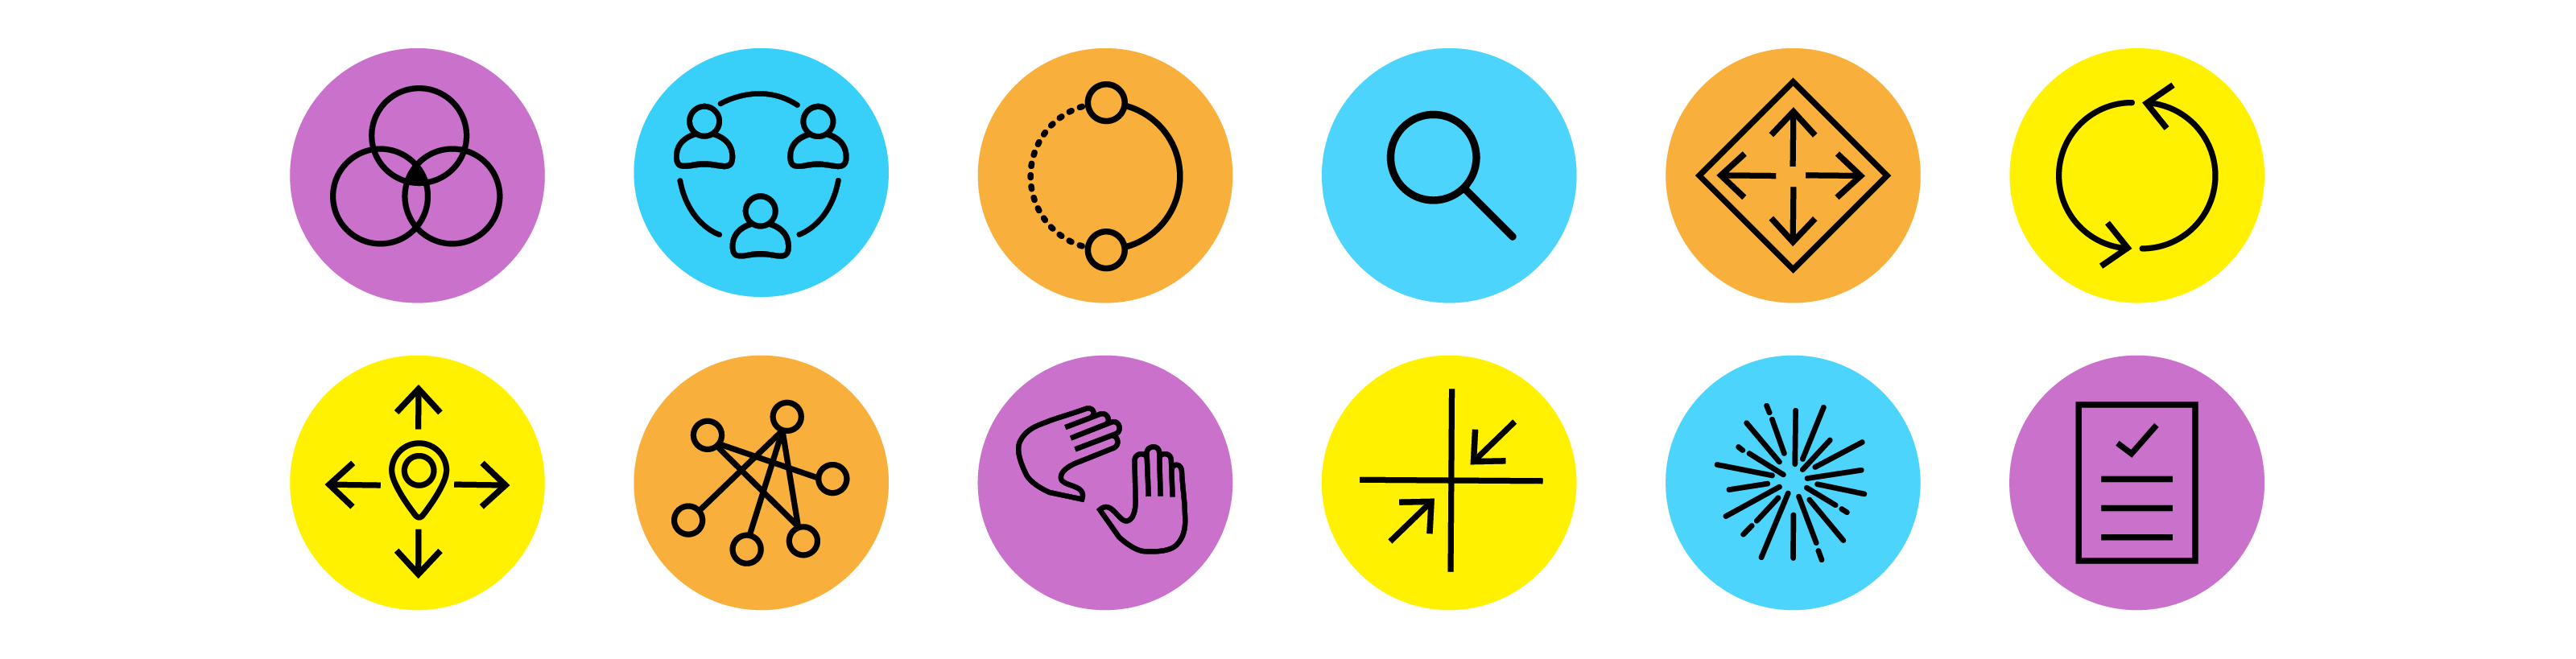 Icons created for the Emergency Aid Lab. The images represent different aspects of the lab and are used through the collaborative workshop environment.